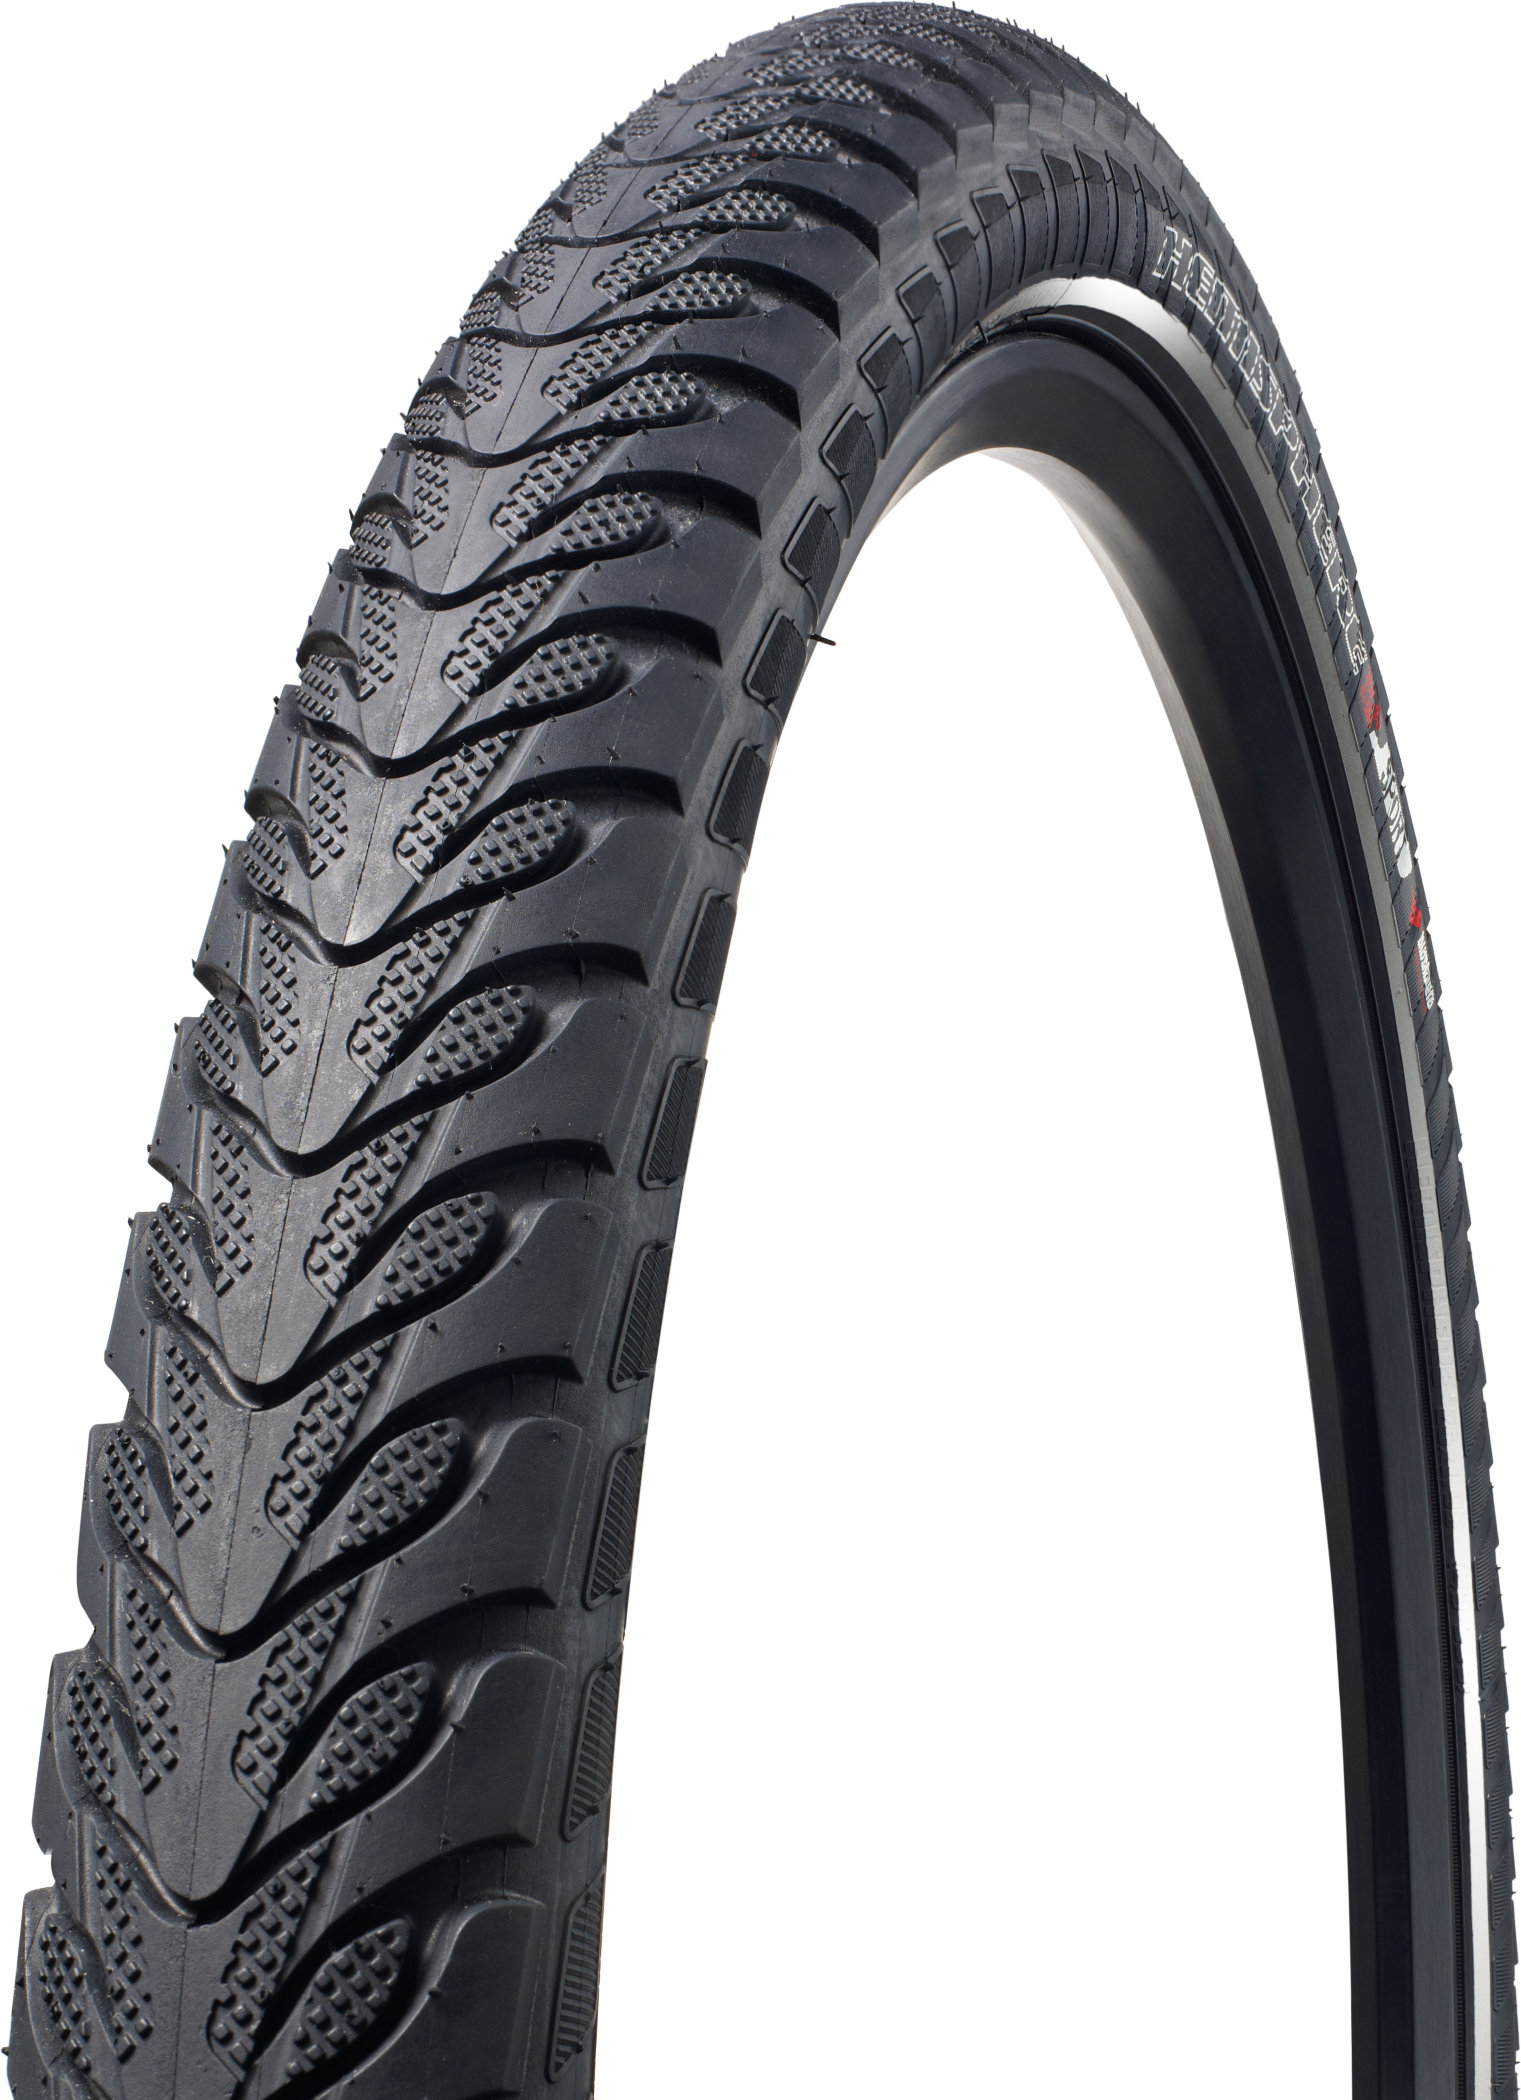 SPECIALIZED HEMISPHERE SPORT REFLECT TIRE 700X38C - Alpha Bikes